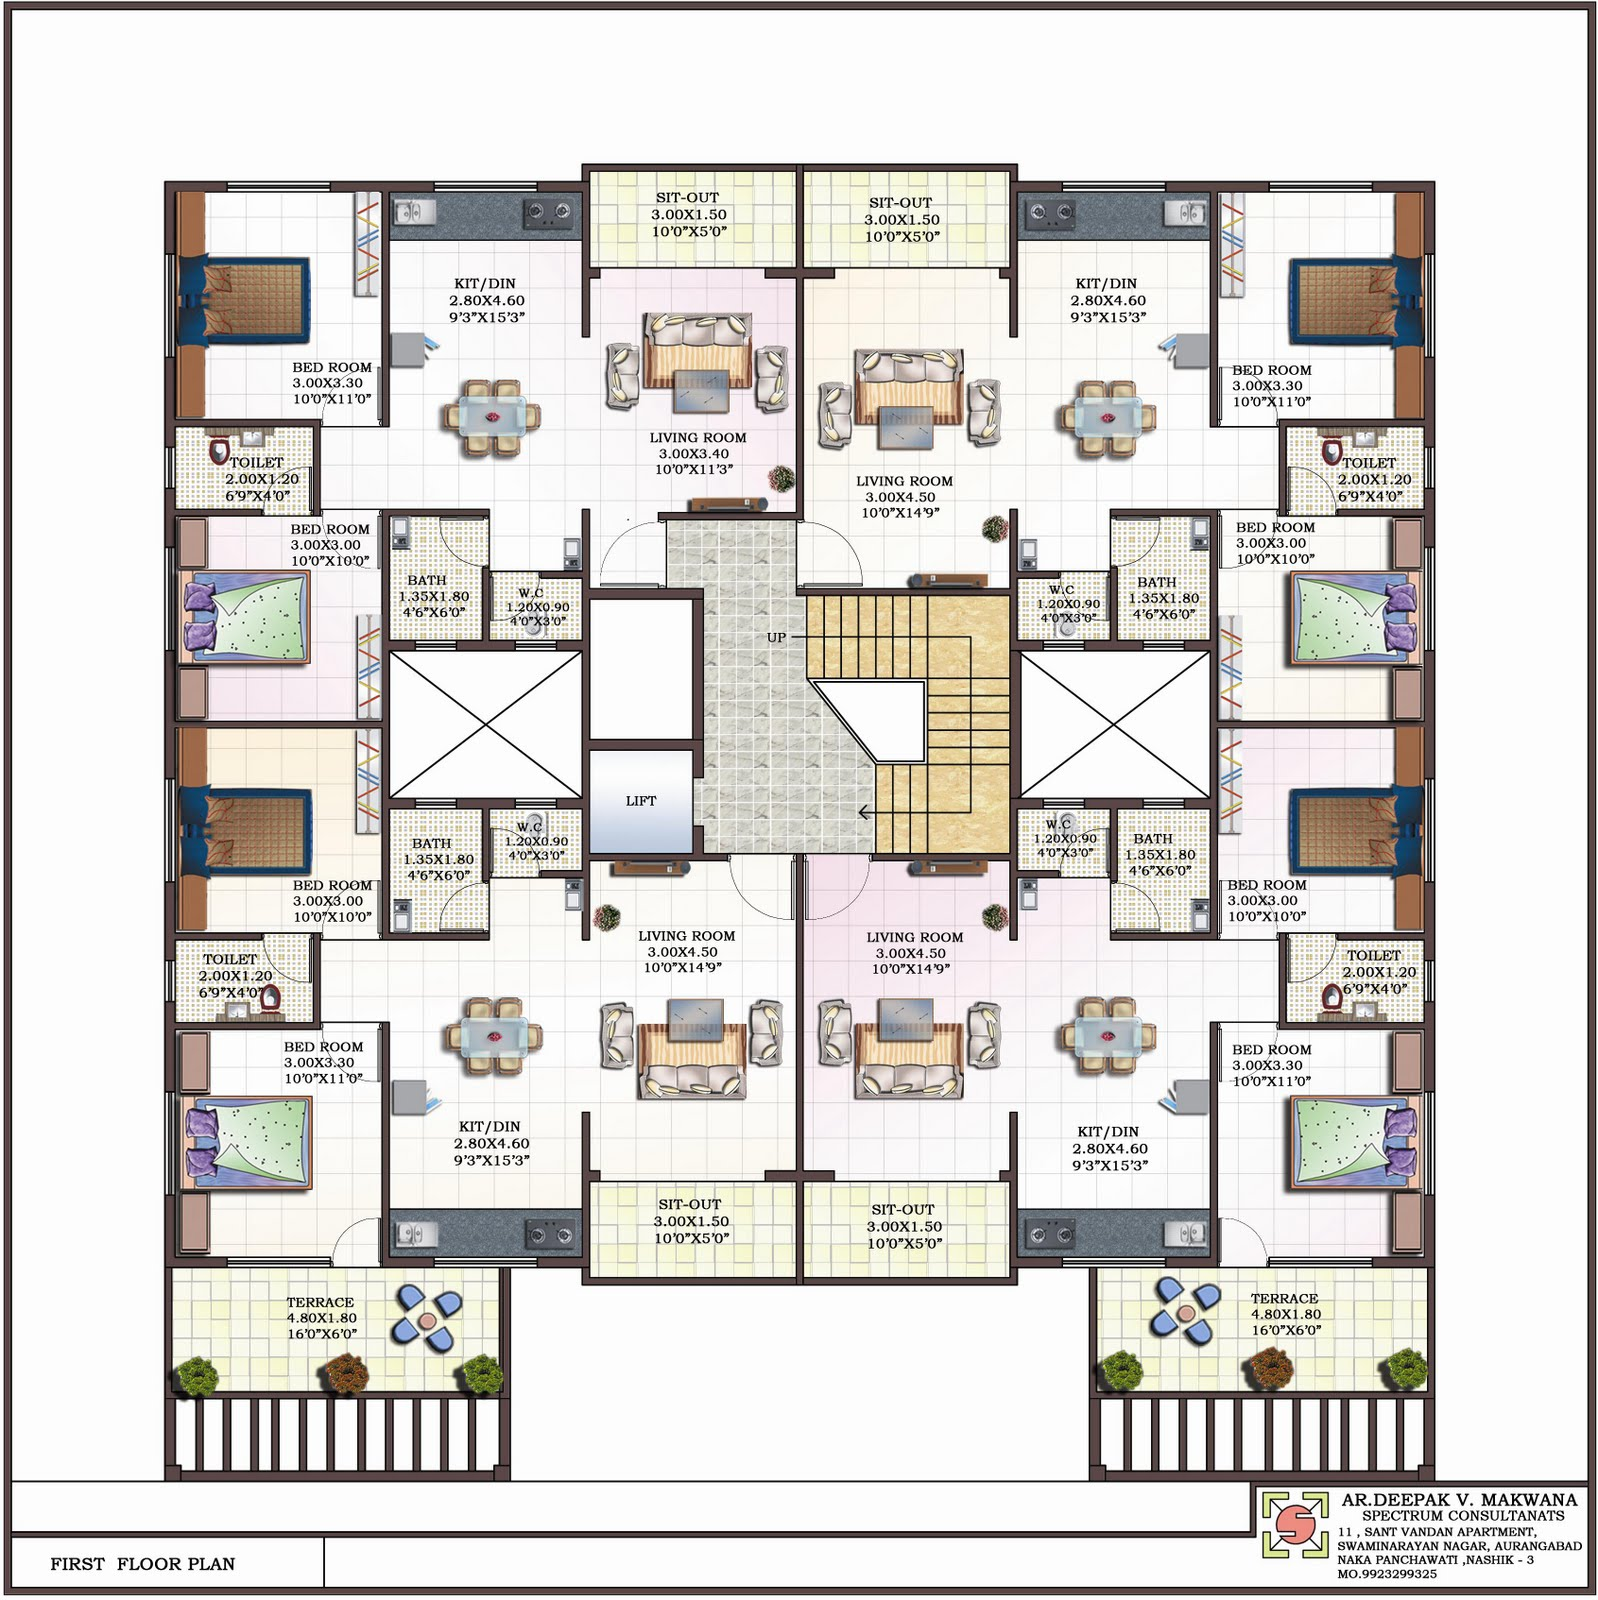 FIRST+FLOOR+PLAN+copy+copy